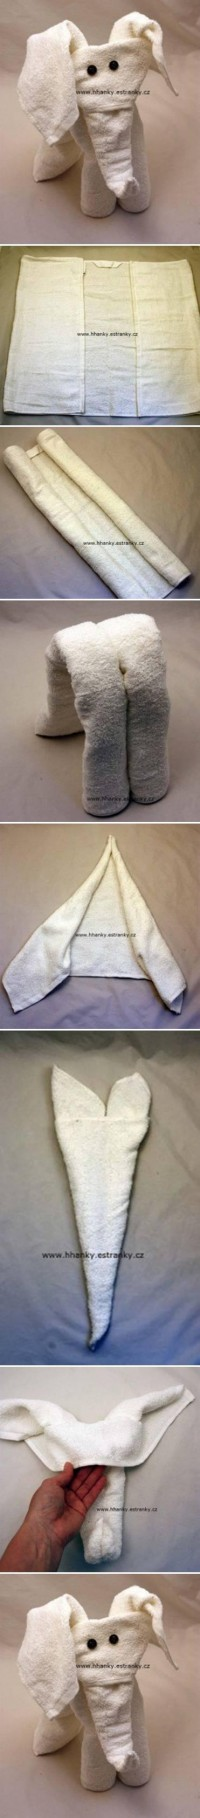 DIY Easy Towel Elephant DIY Projects | UsefulDIY.com